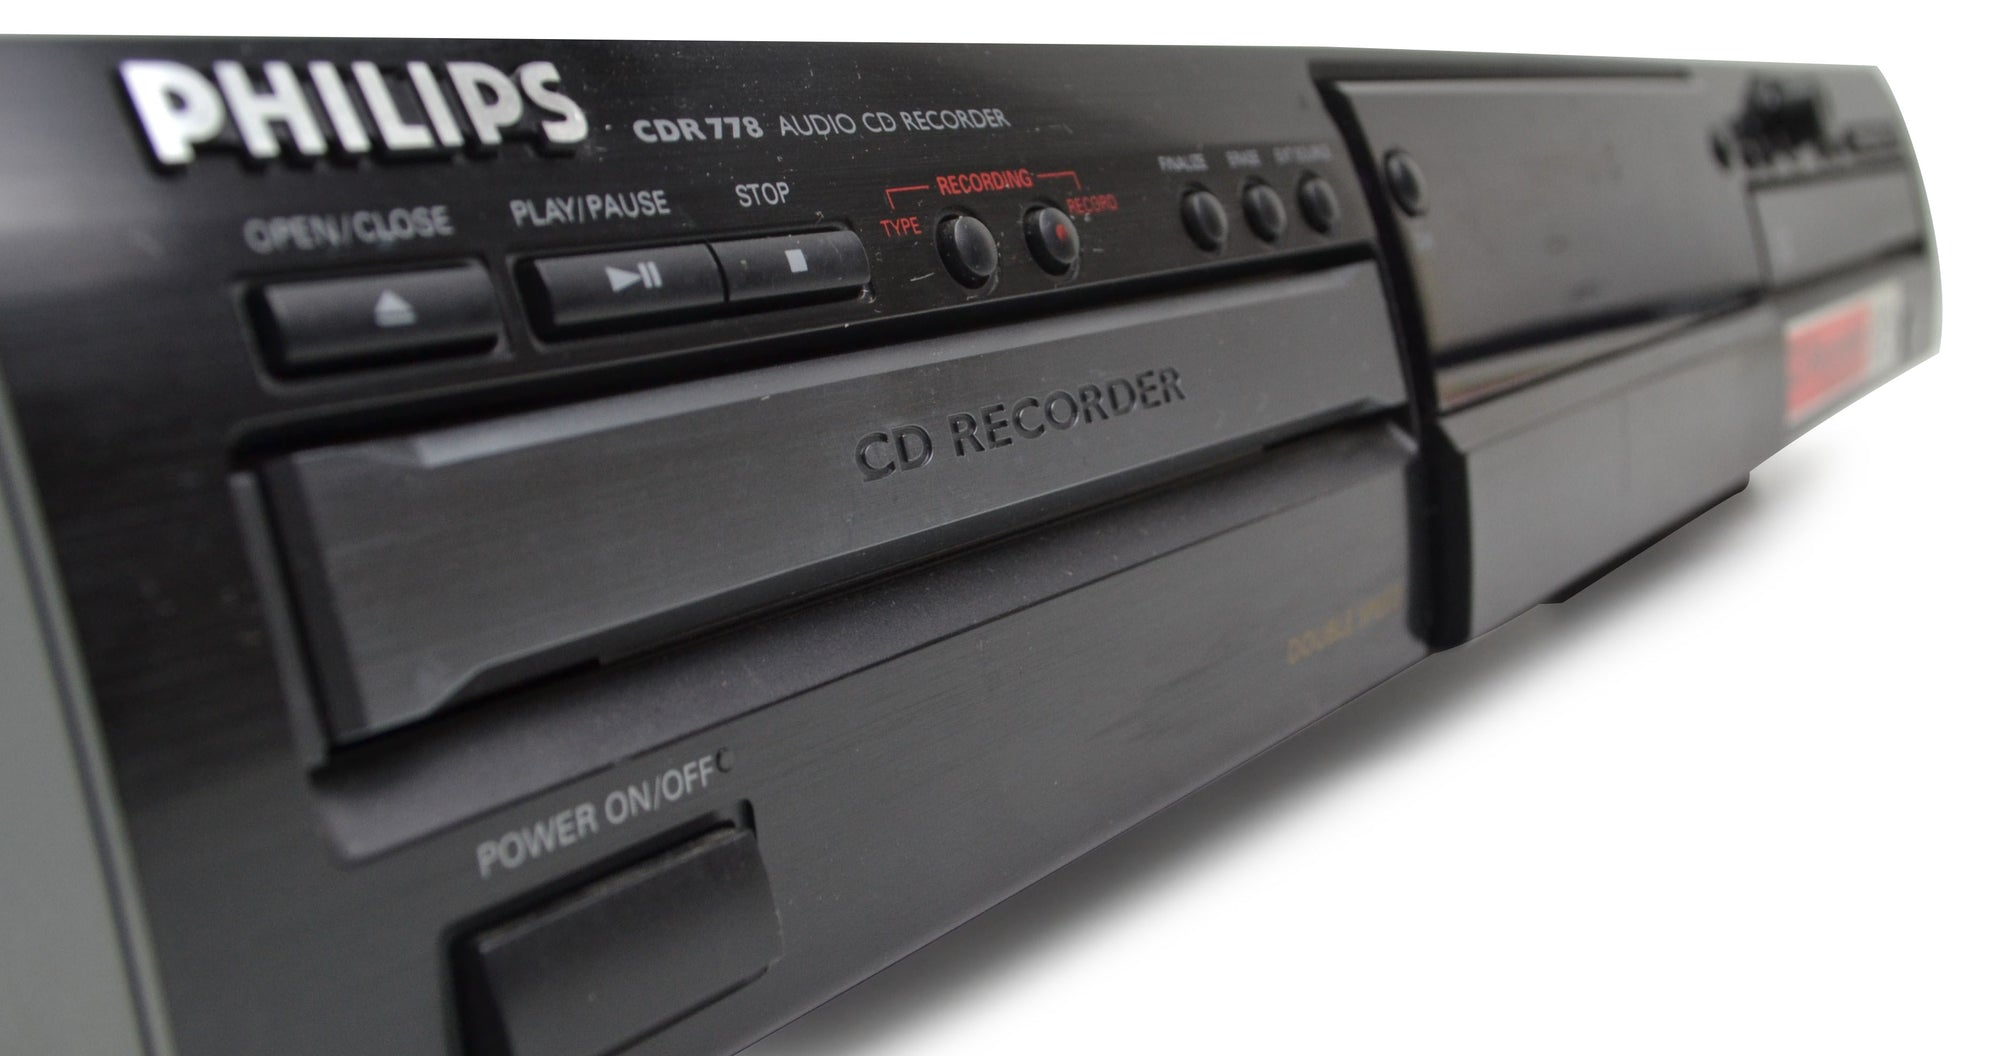 Philips CD recorder dual tray cool picture angle